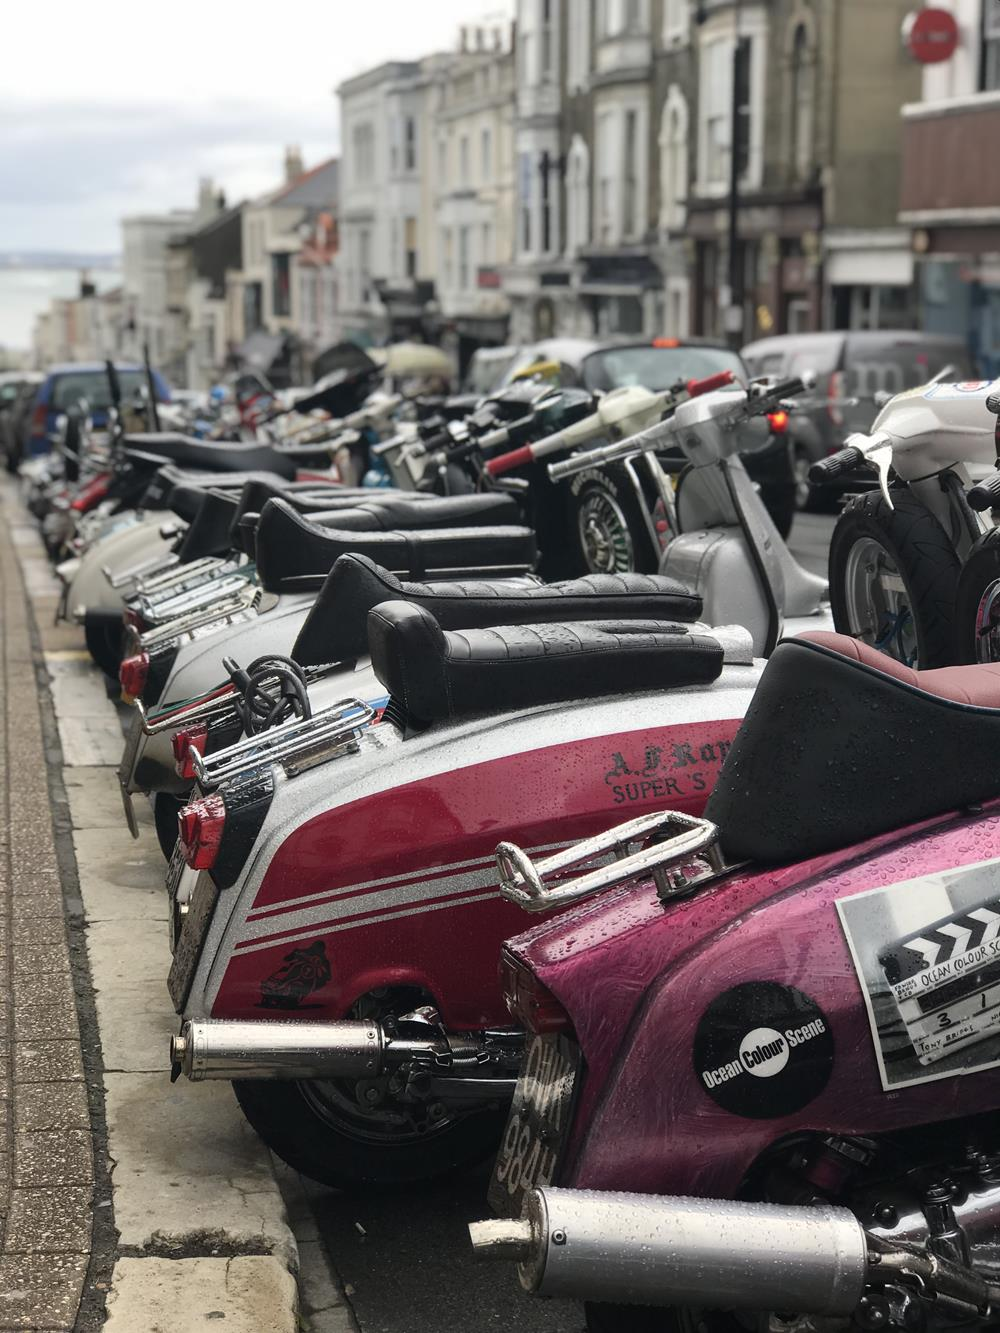 View of Union Street with rear ends of Lambrettas in the foreground